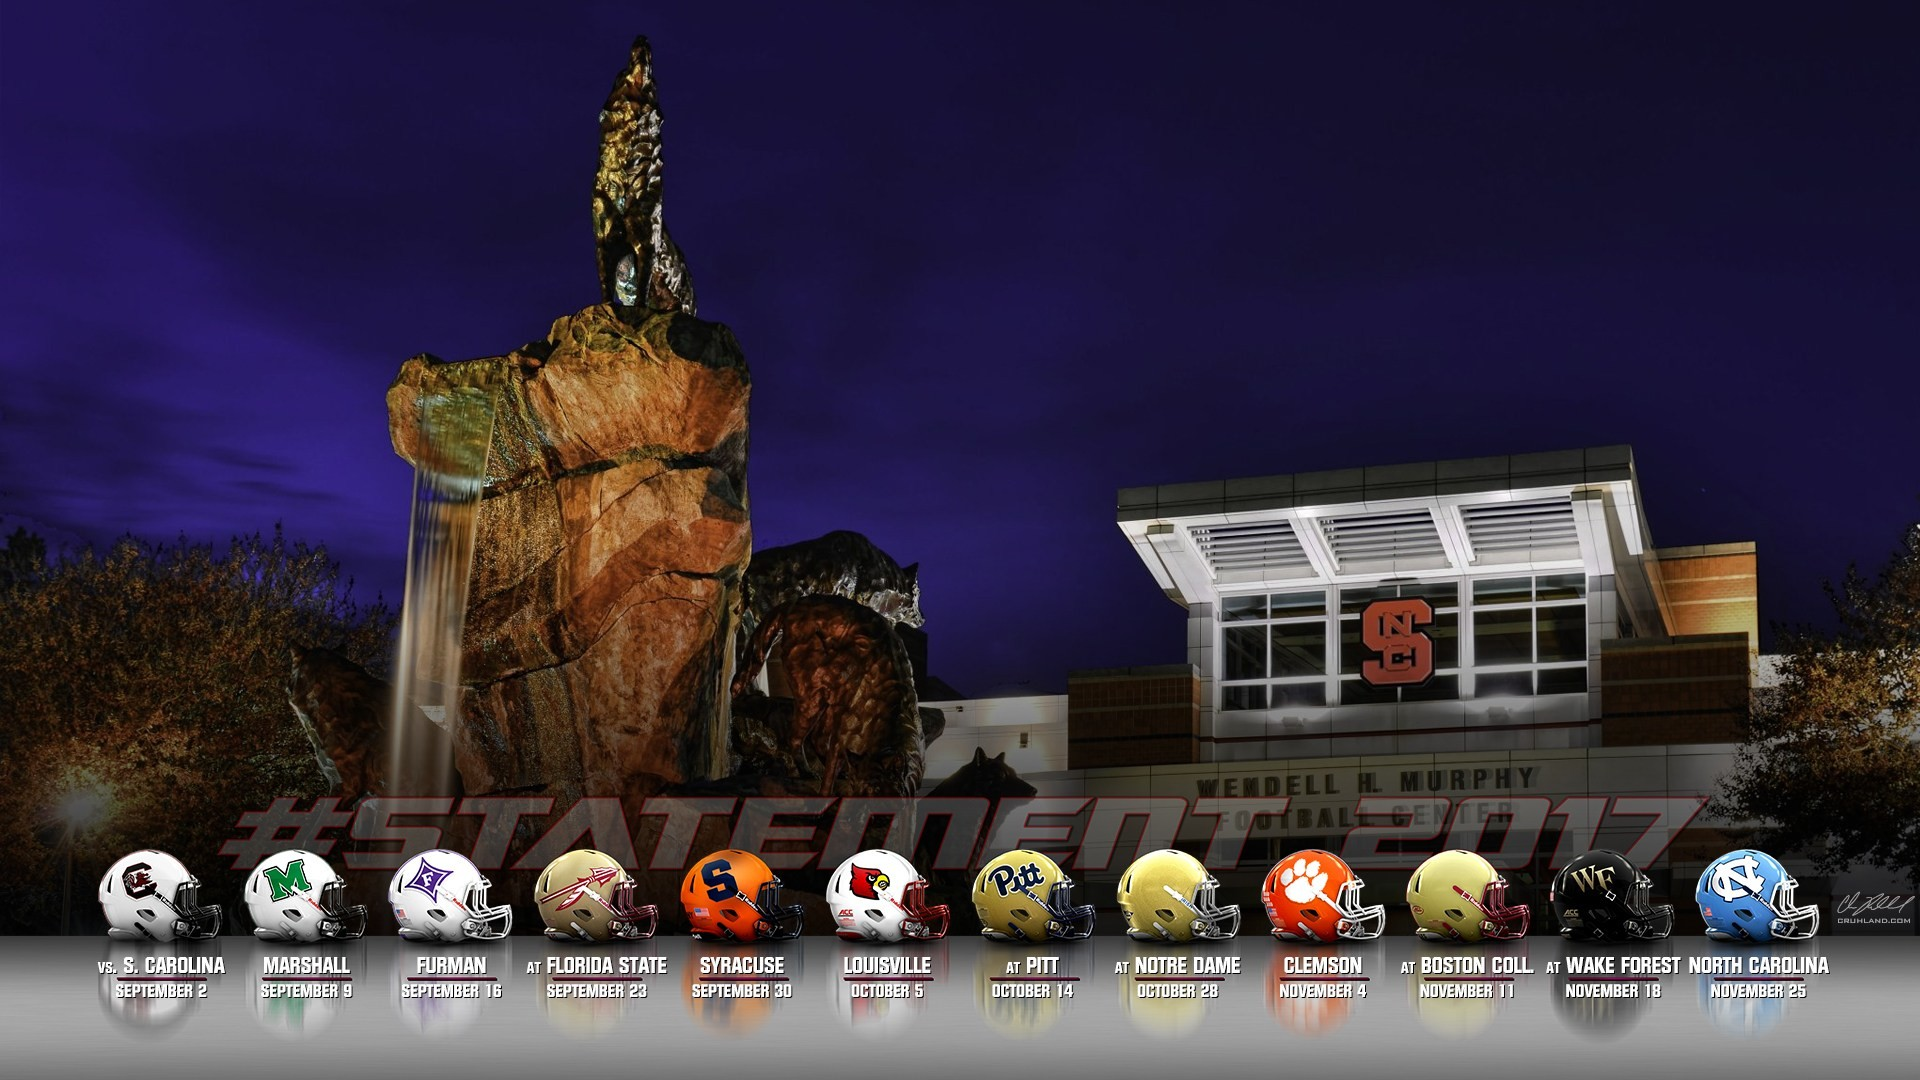 What better way to show your support than with these 2017 football schedule  wallpapers. Thanks to my buddy @Hokie20 for his help putting these together.